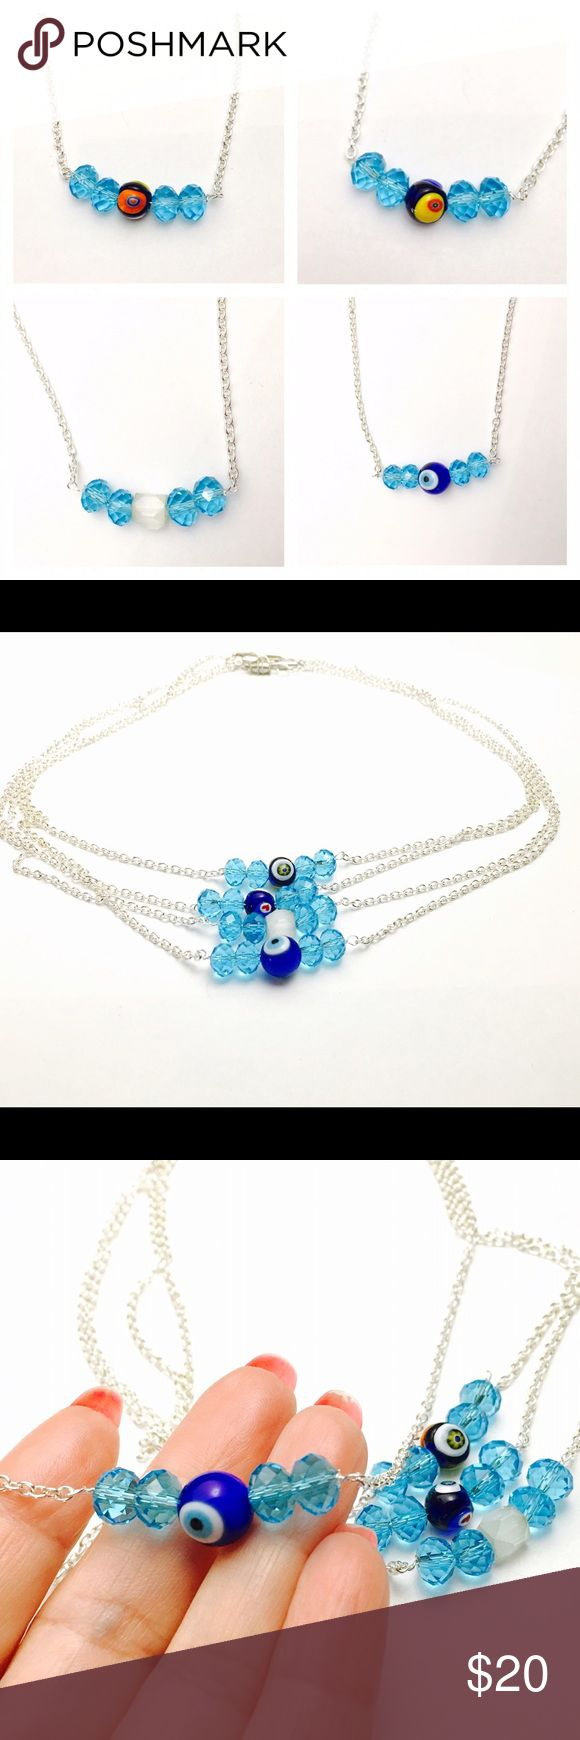 Blue crystal trendy necklace, silver tone, NWOT Blue crystal trendy necklace, silver tone, handmade NWOT Jewelry Necklaces